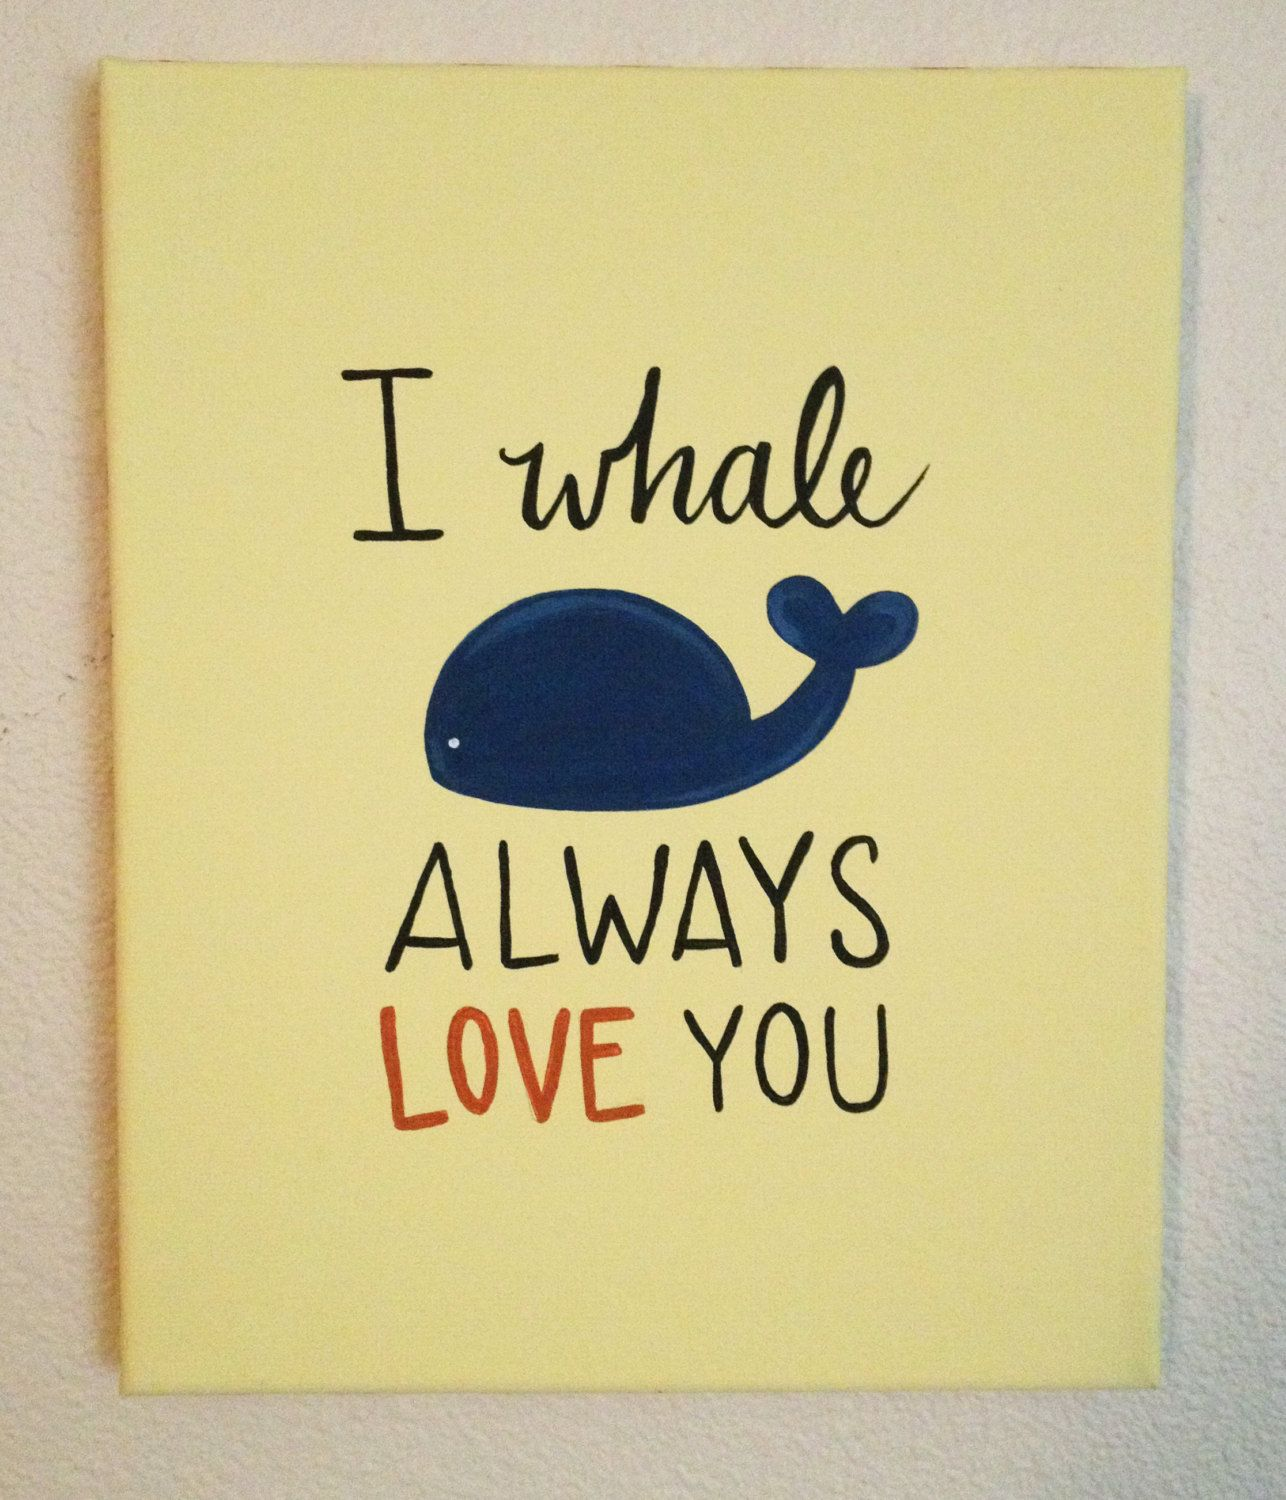 I Whale Always Love You Hand Painted Wall Art